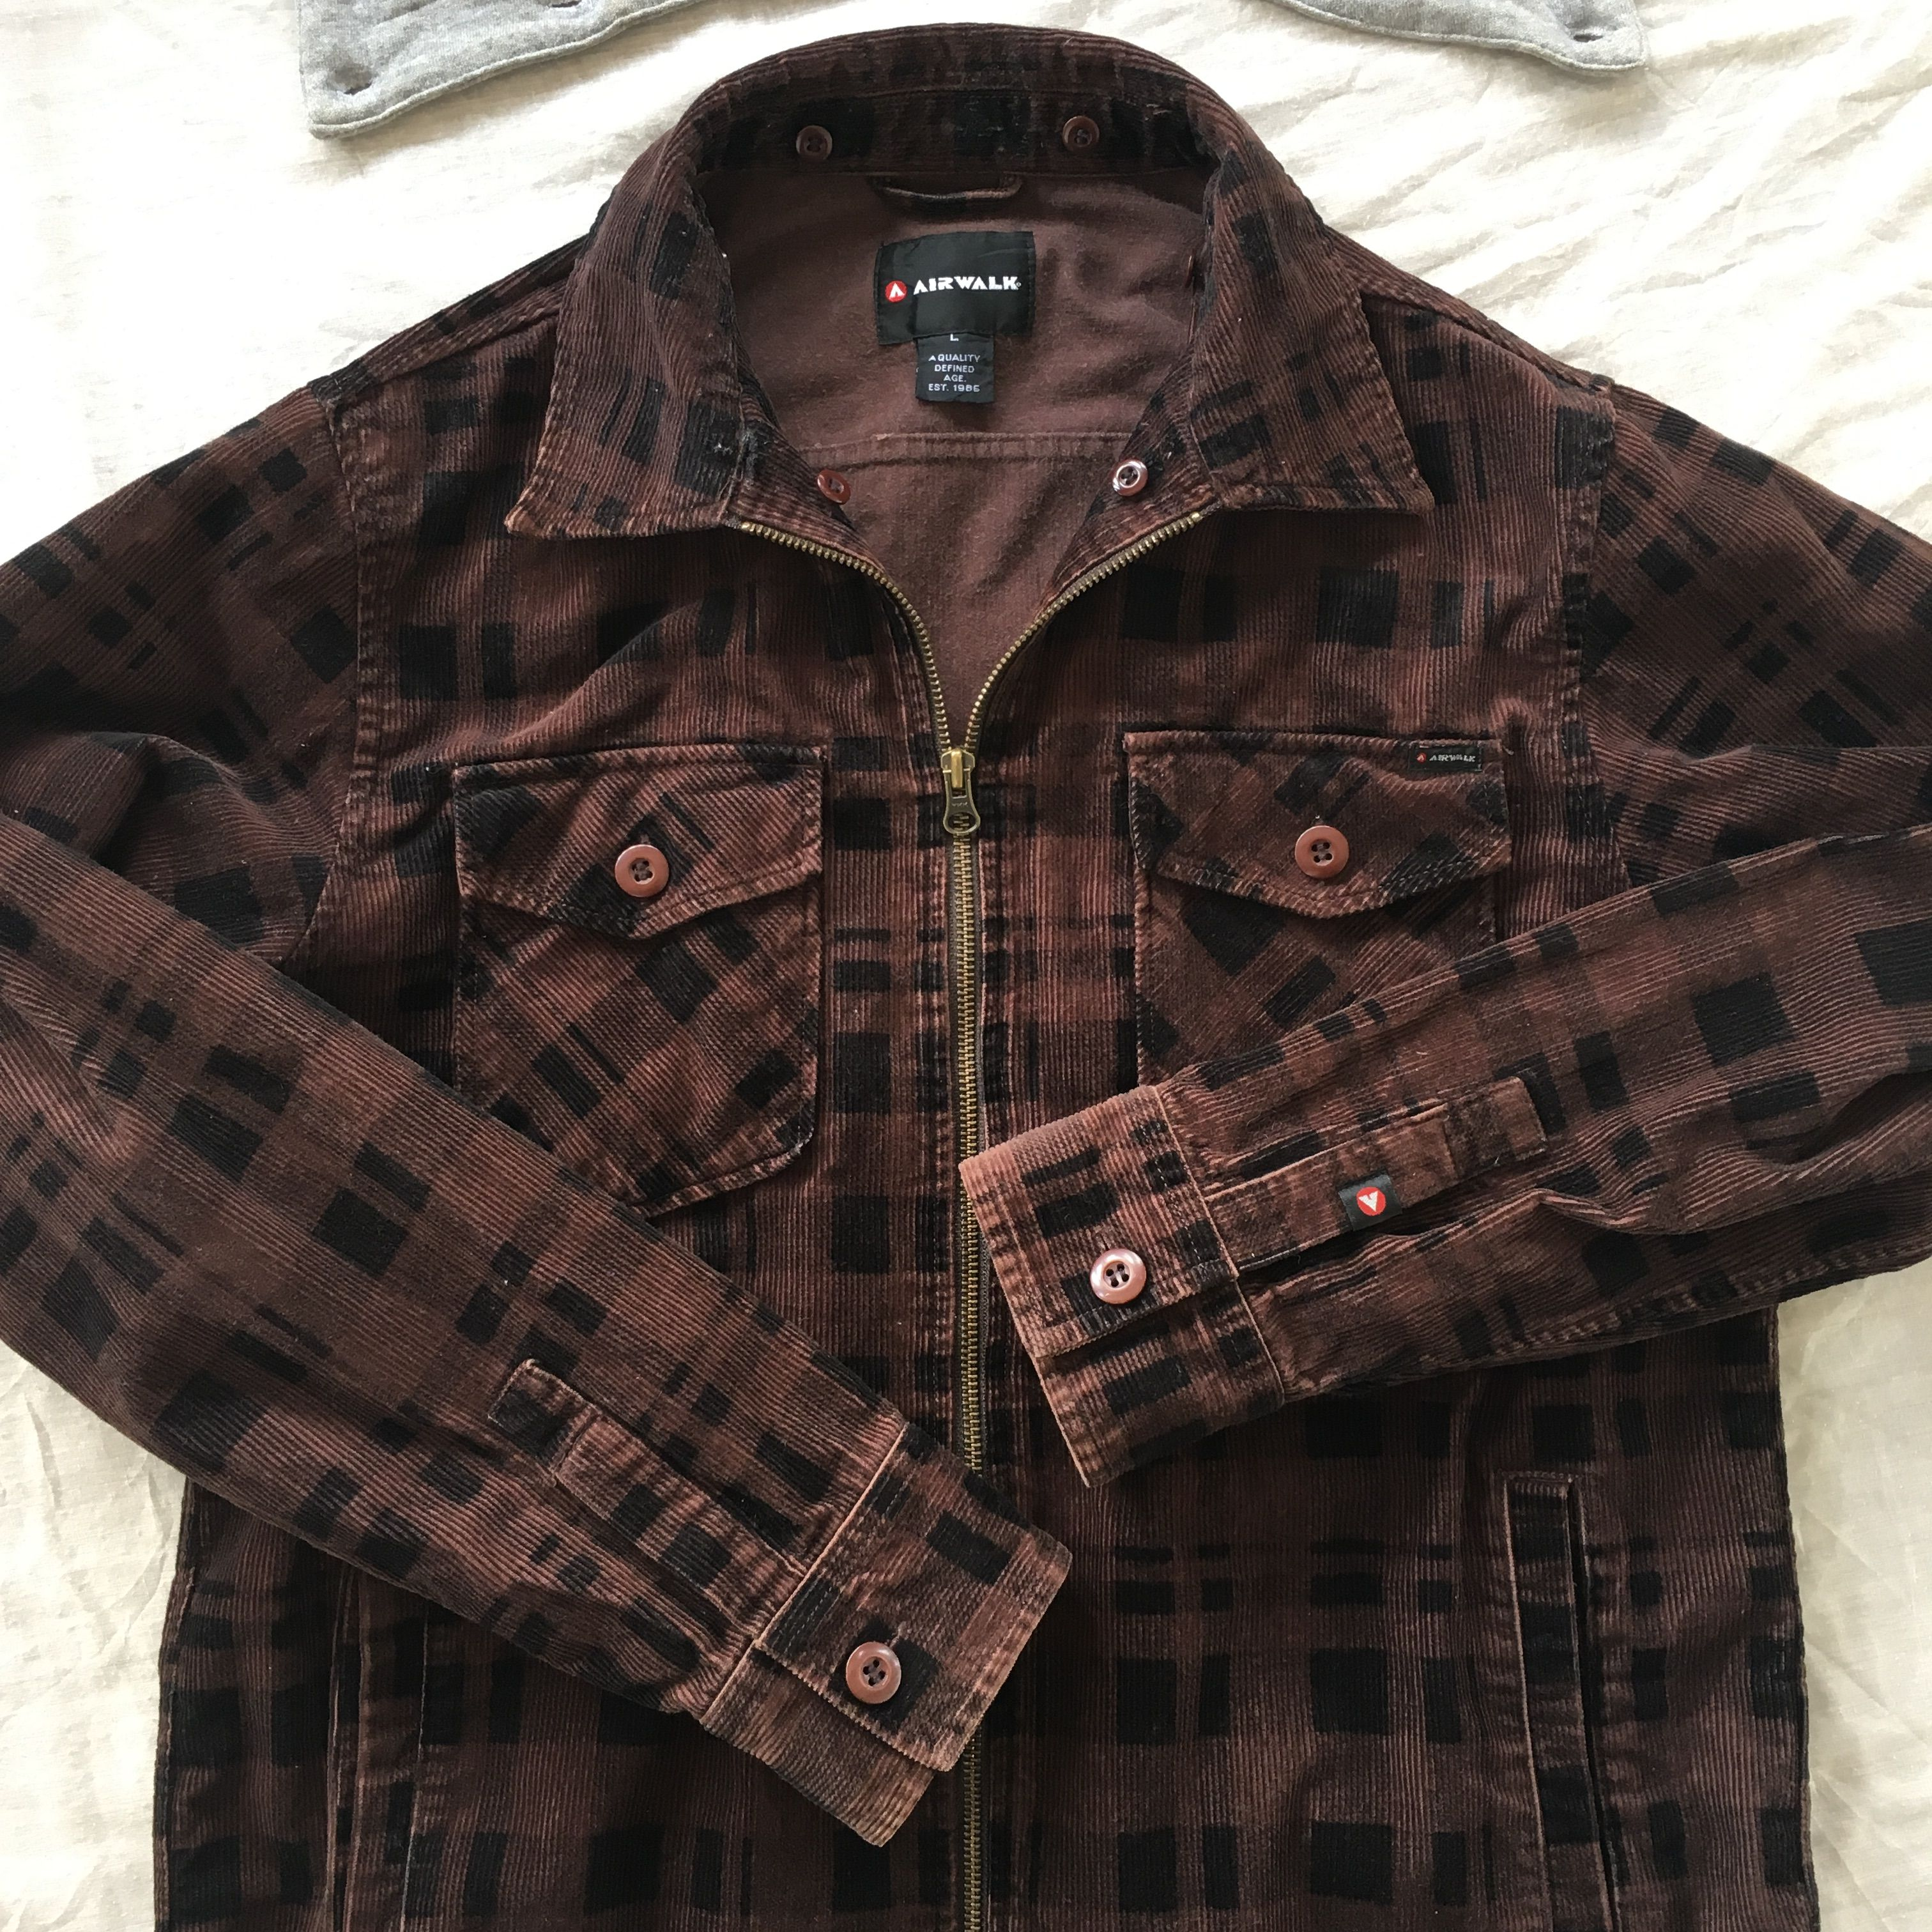 Airwalk Corduroy Plaid Cotton Jacket  Unisex Jacket  Mens  Etsy Up for sale  Visit to view detailed info